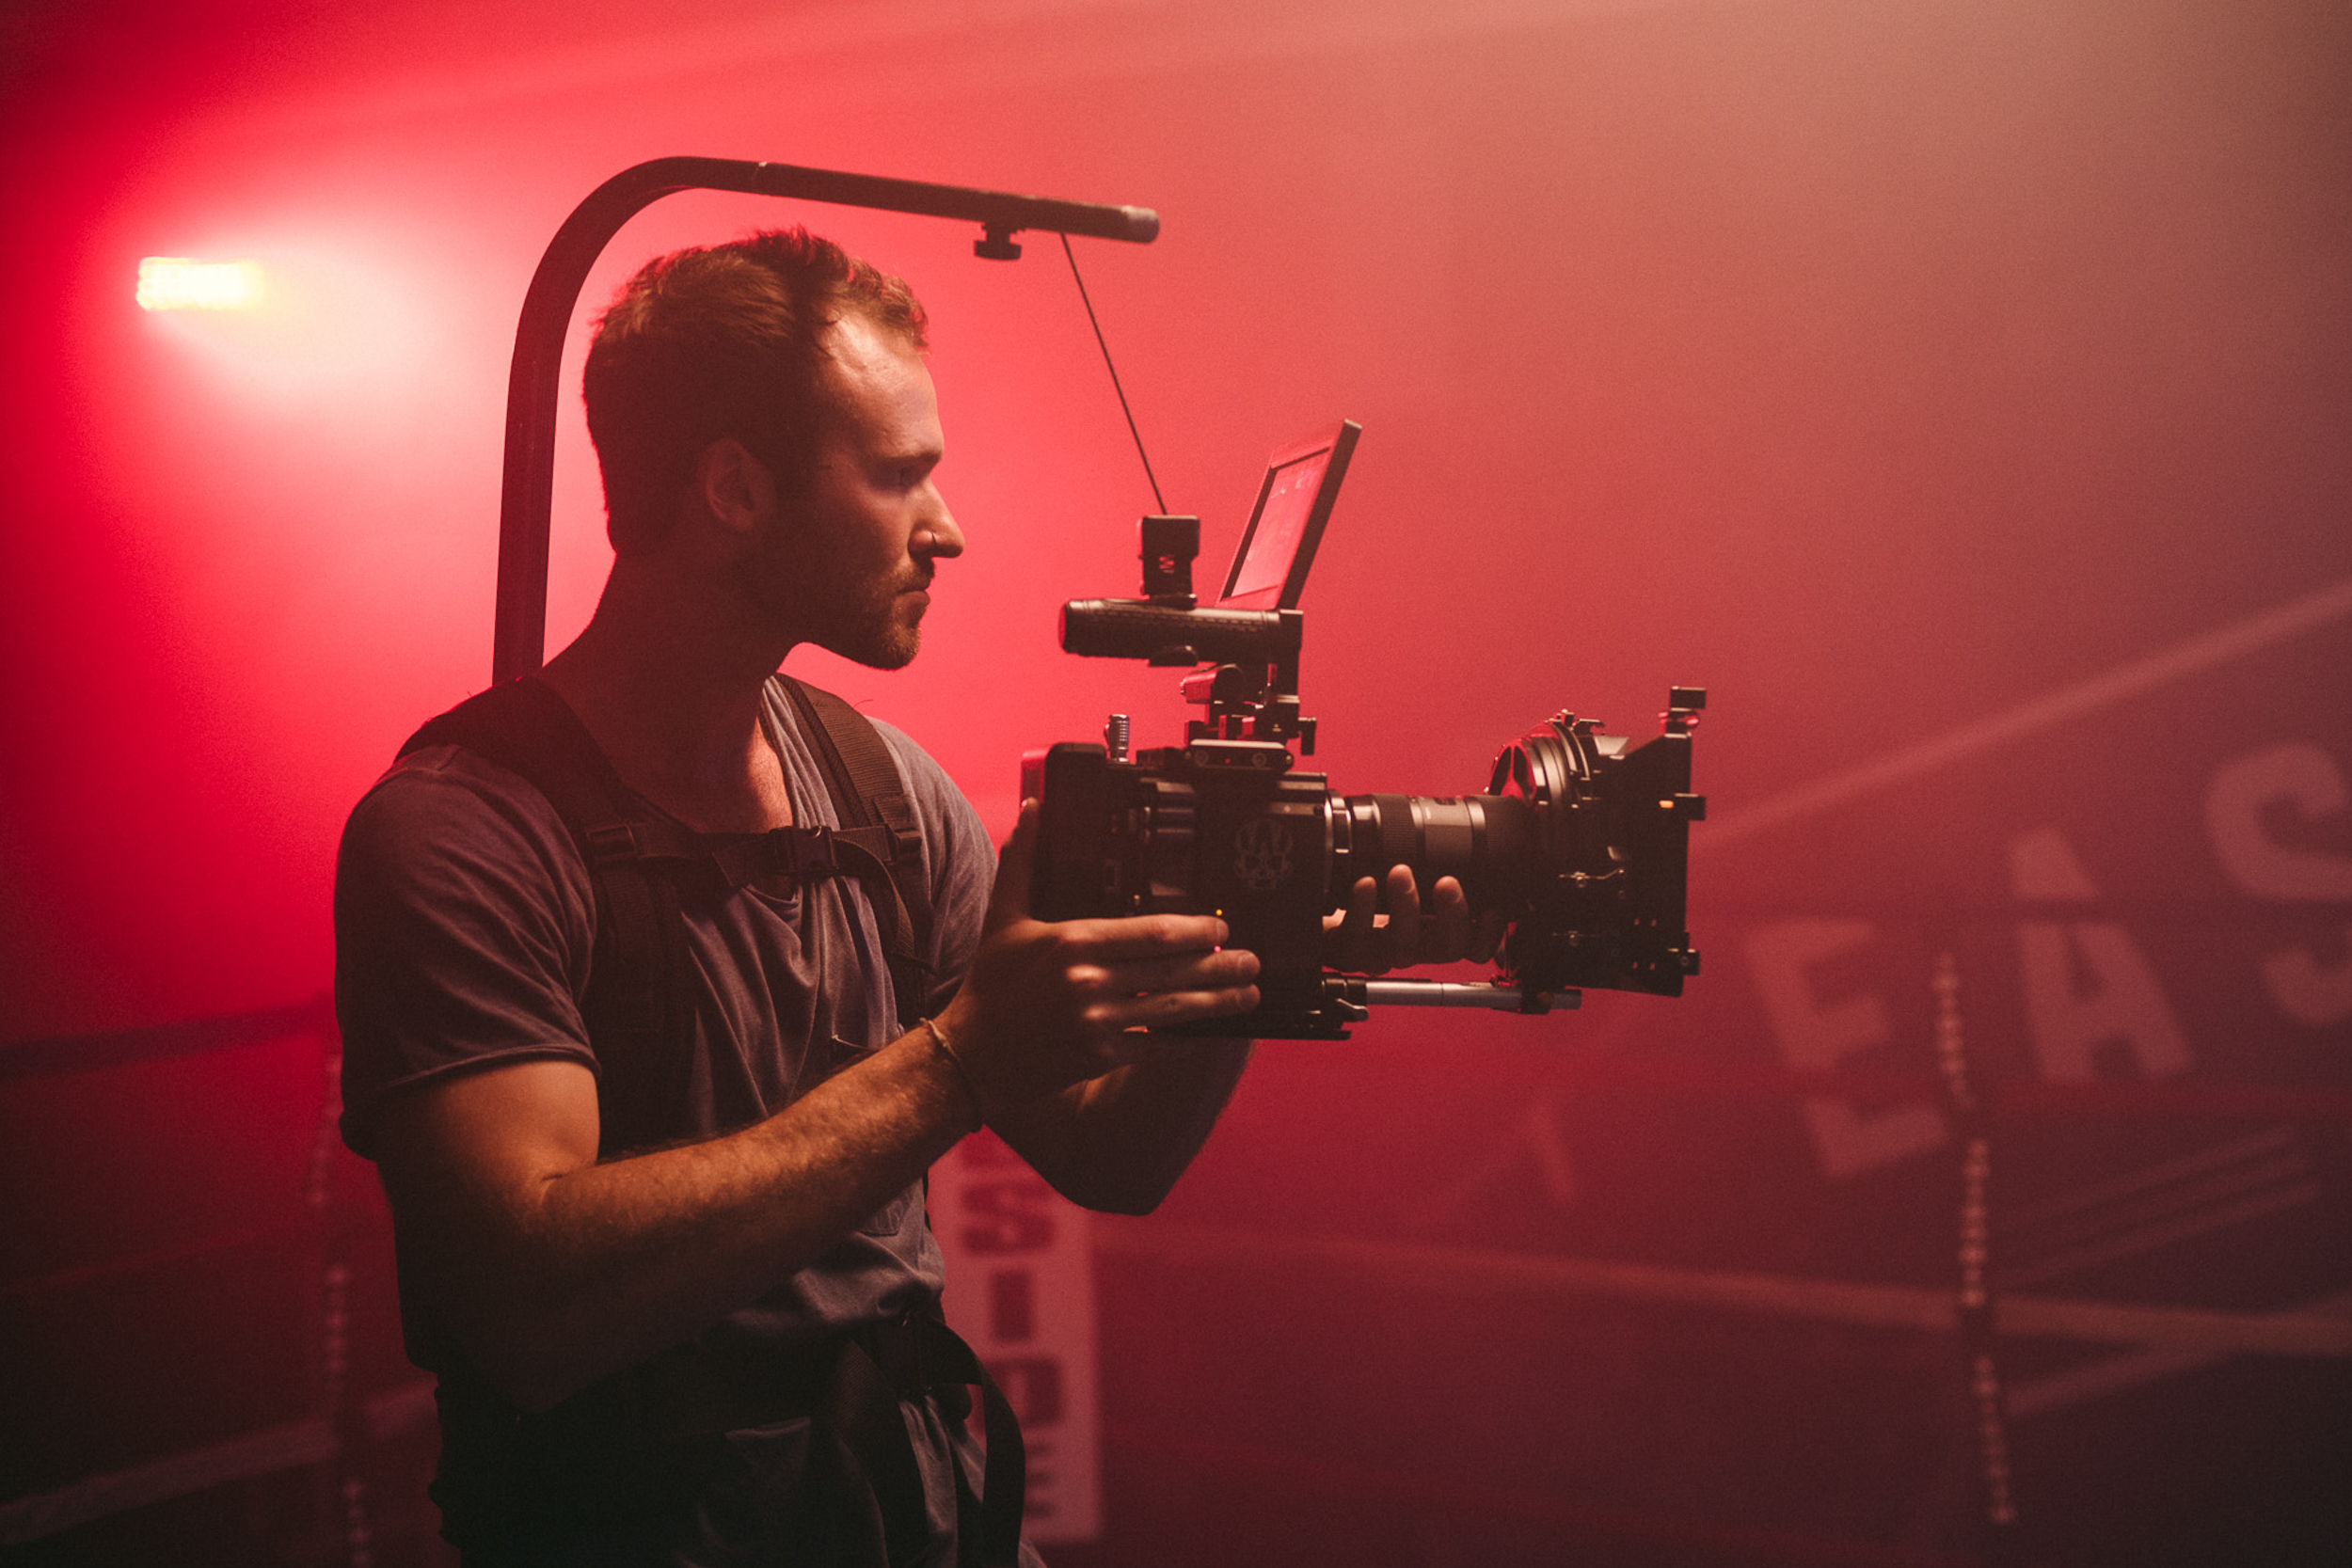 Video Production   Promotional videos, broadcast media, web series and short films are just a few of our cinema services.